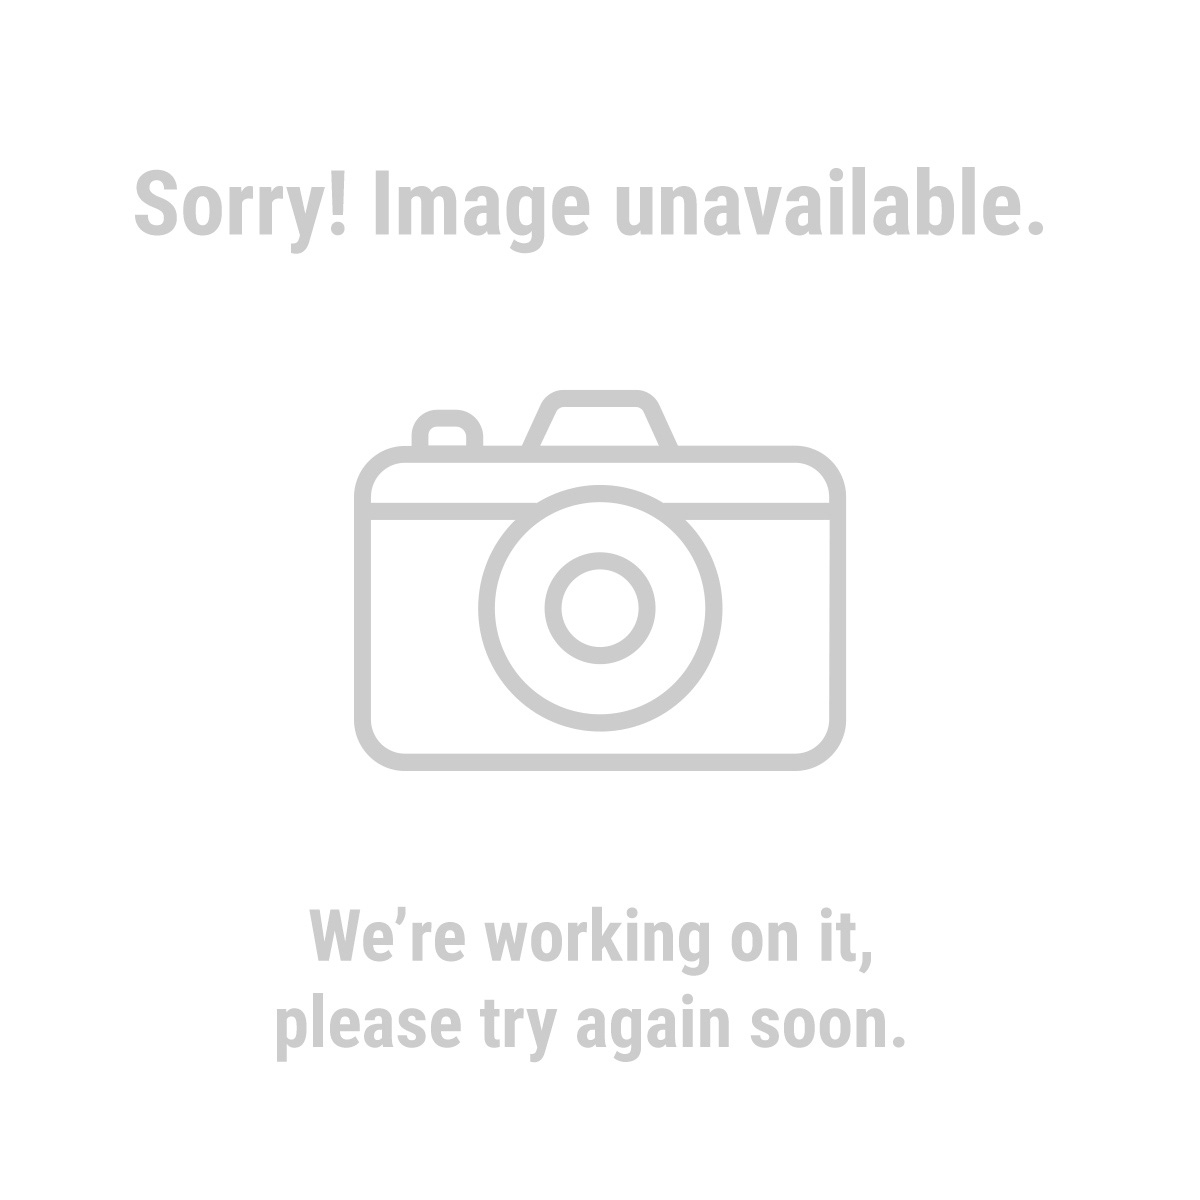 "Chicago Electric Welding Systems 42916 0.030"" ER70S-6  Carbon Steel Welding Wire, 2 Lb. Roll"